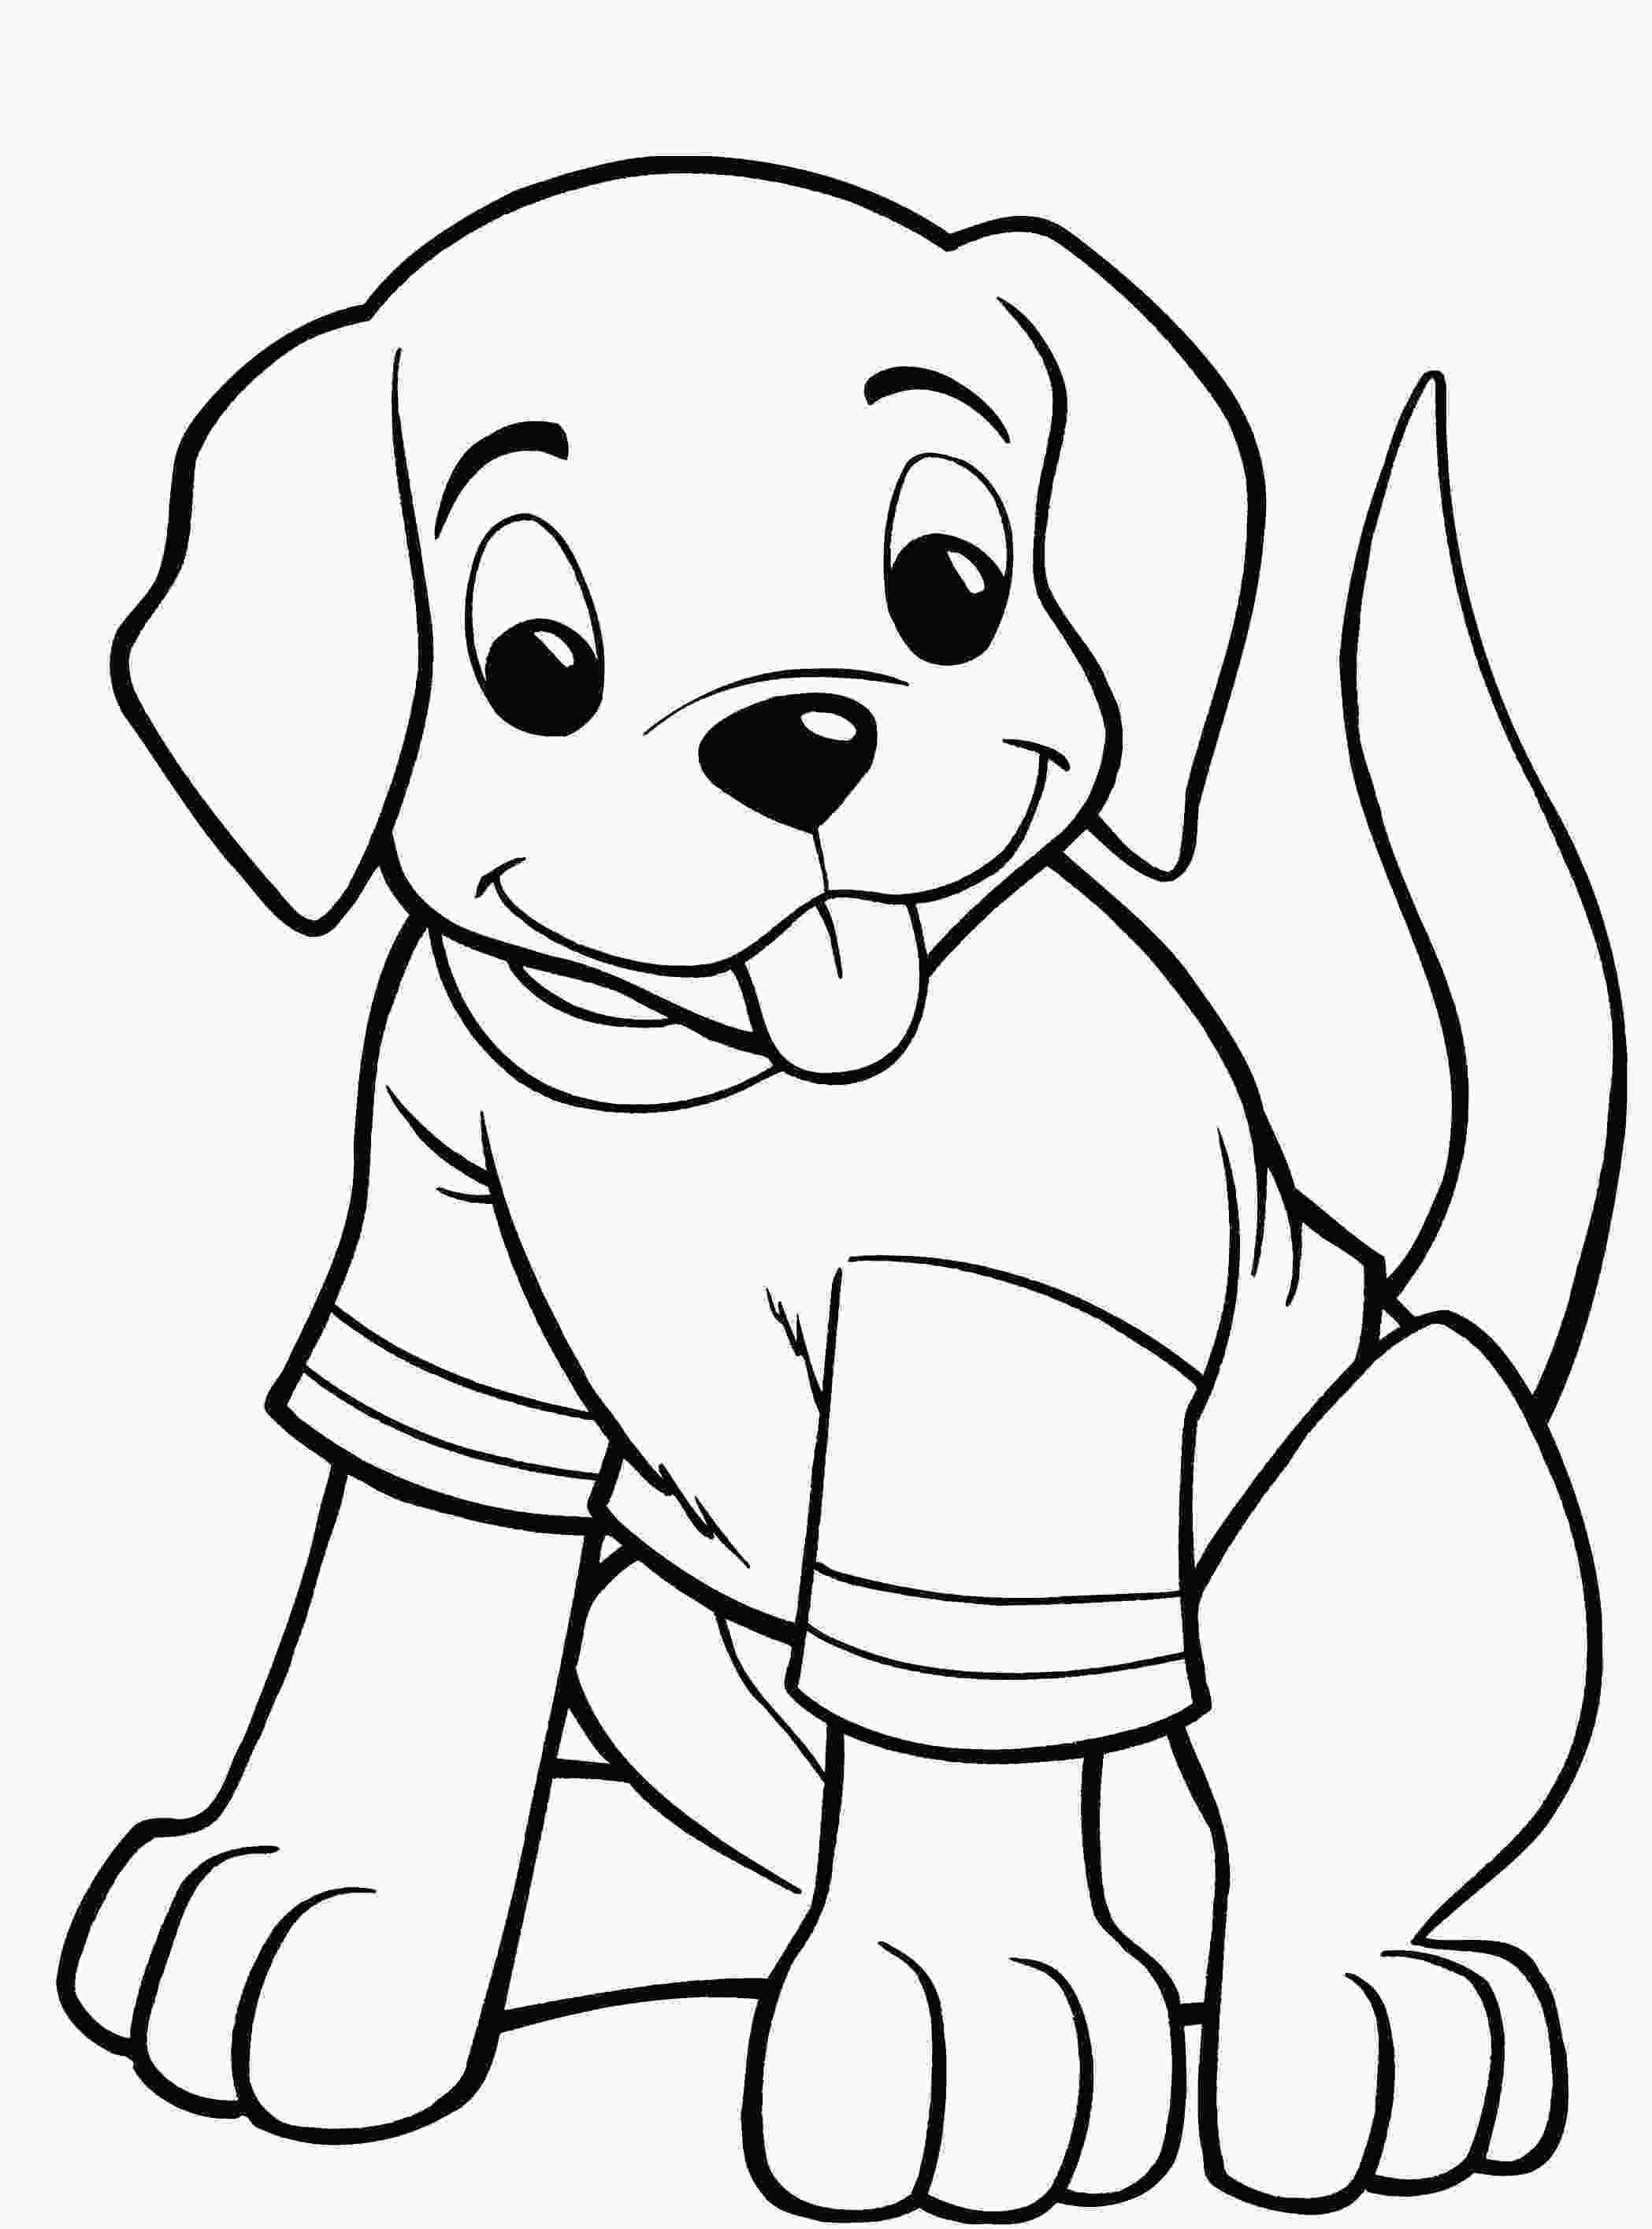 colouring pages of dog dog coloring pages for kids preschool and kindergarten